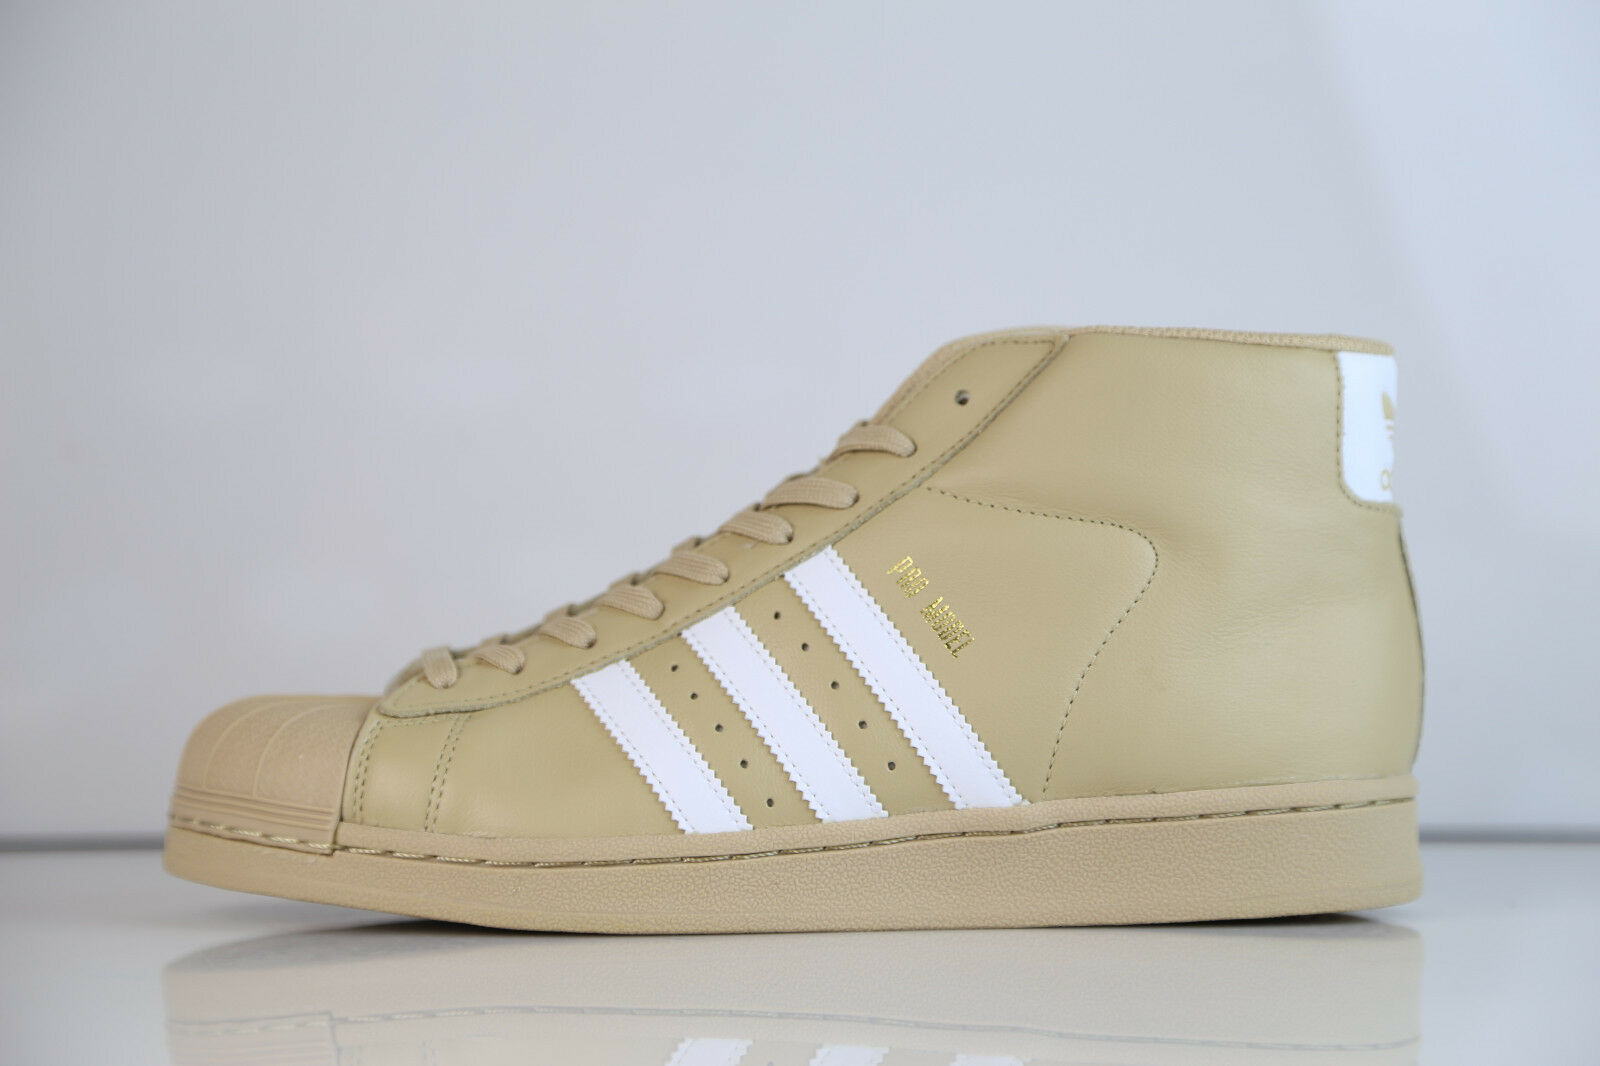 Adidas Khaki Originals Pro Model Linen Khaki Adidas Tan CG5072 8-13 superstar supreme leather 7342f0